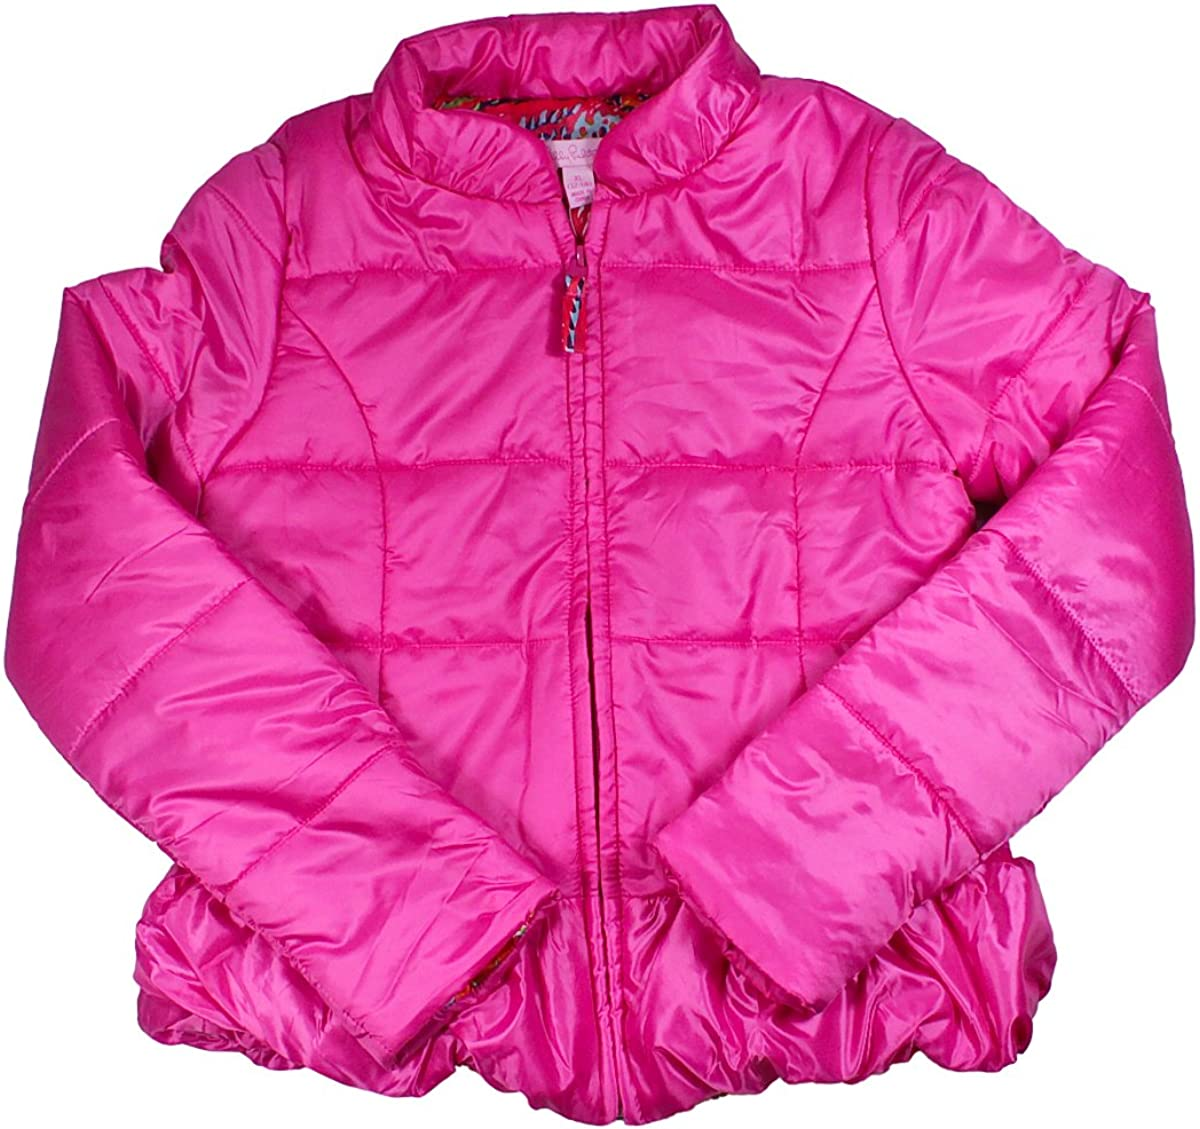 Lilly Pulitzer Girls Pink Parka Size M